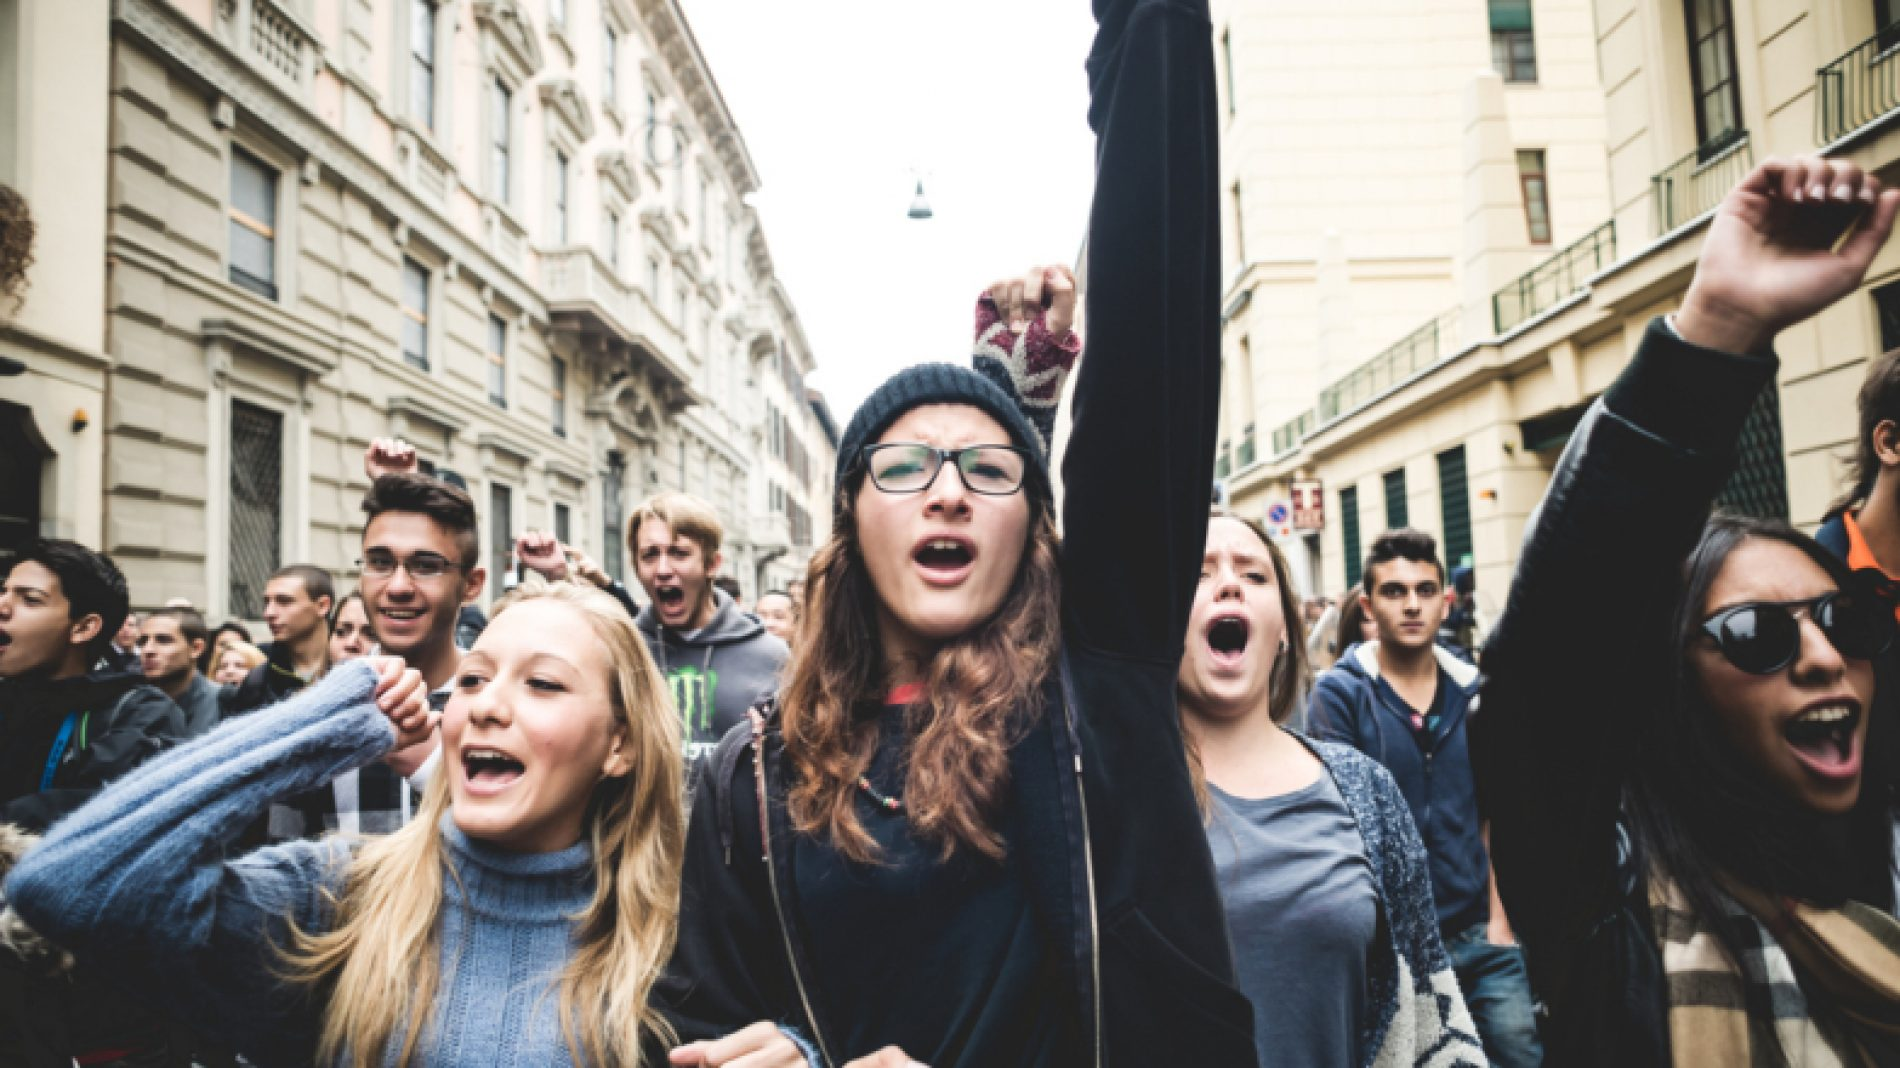 Young-people-protesting-in-climate-strikes-CrBMgC